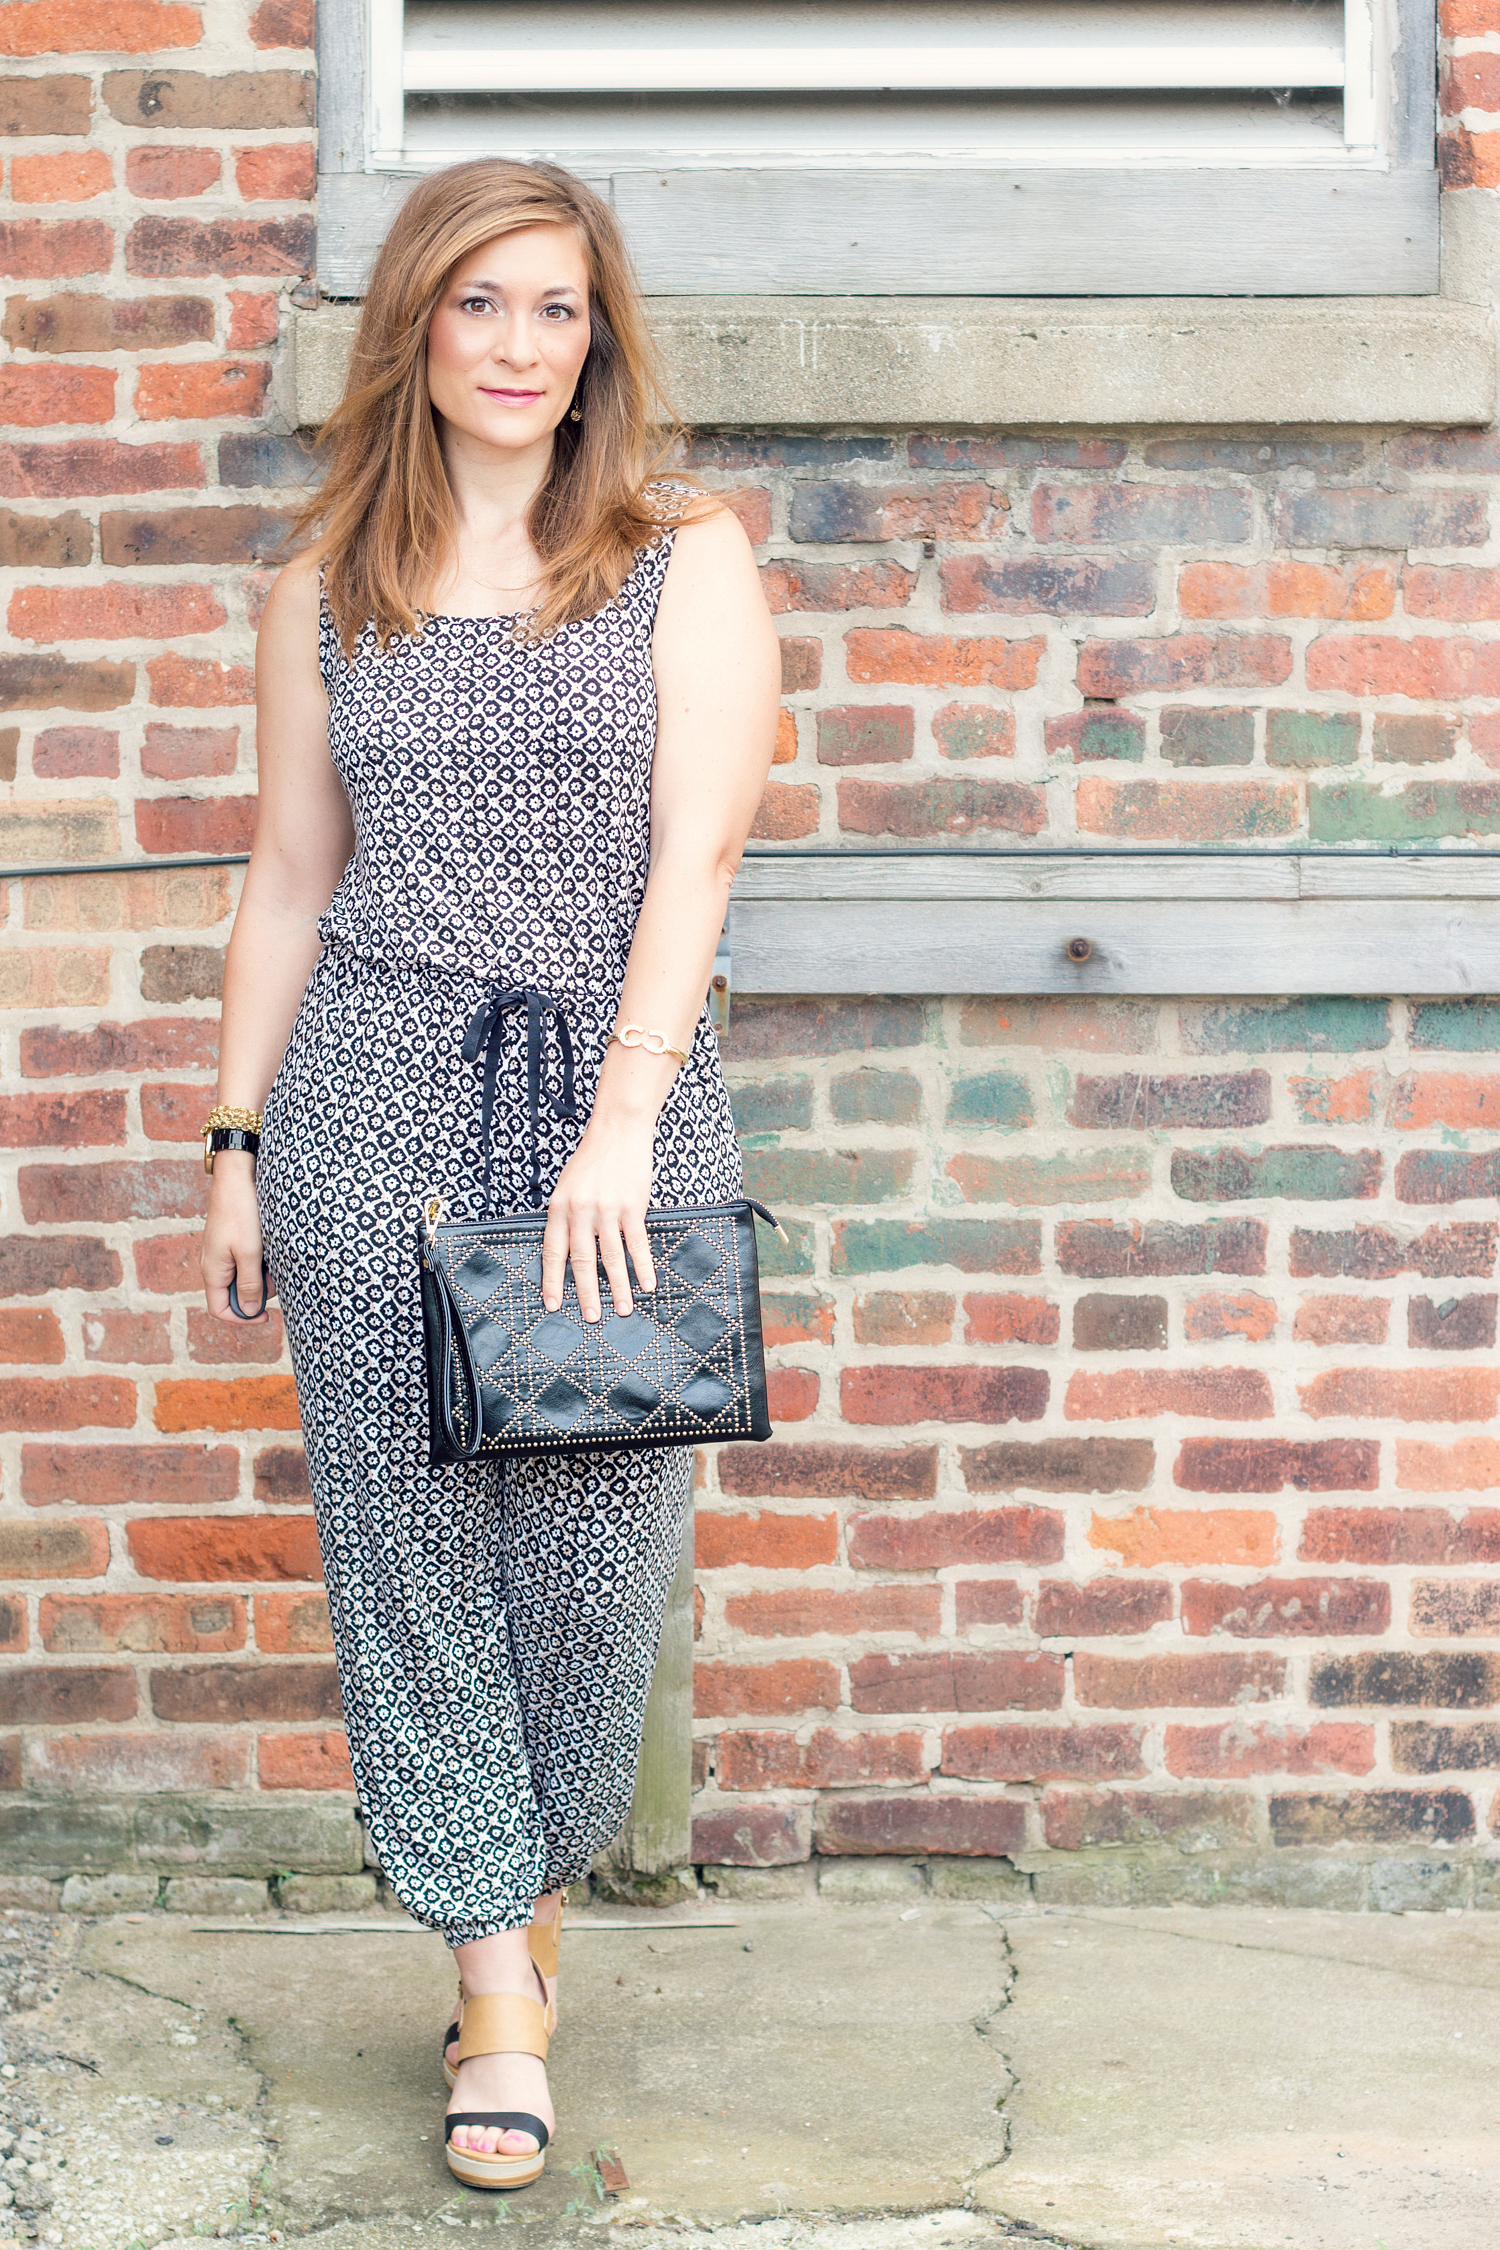 Best Budget Friendly Clothes for Women